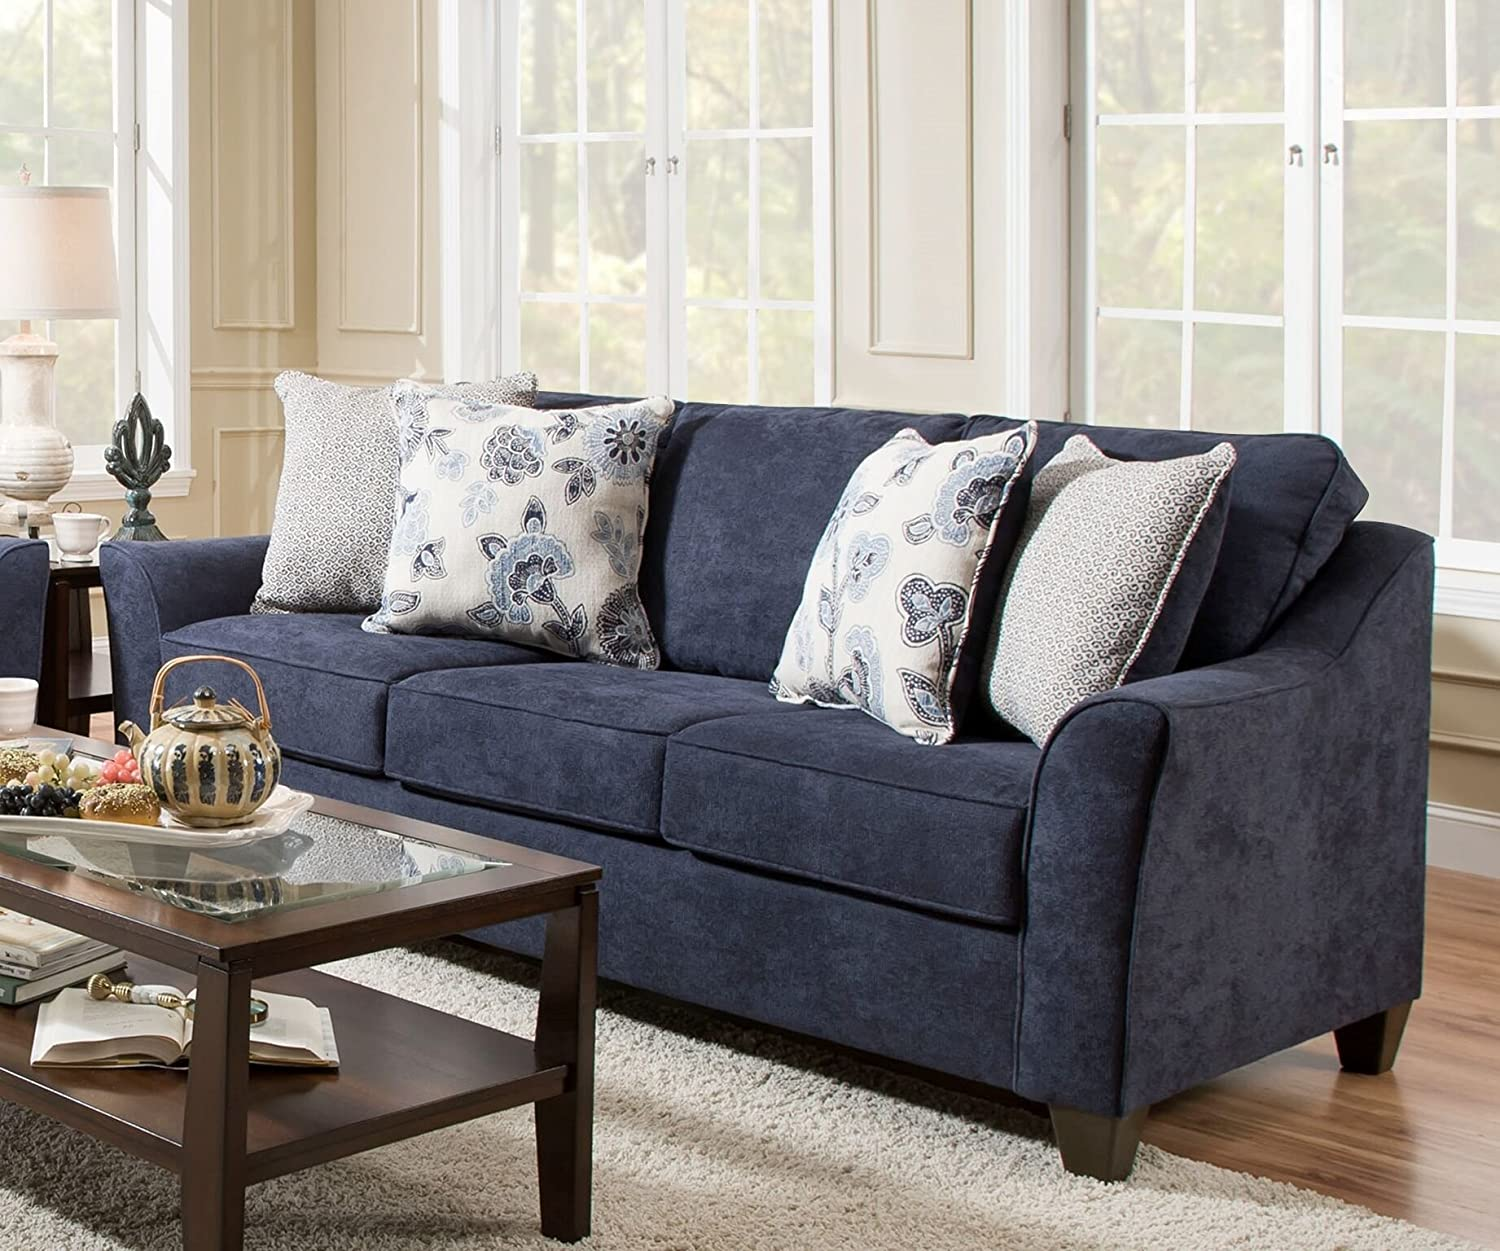 Pleasant Amazon Com Simmons Upholstery 4330 04Q Prelude Navy Sleeper Home Interior And Landscaping Dextoversignezvosmurscom